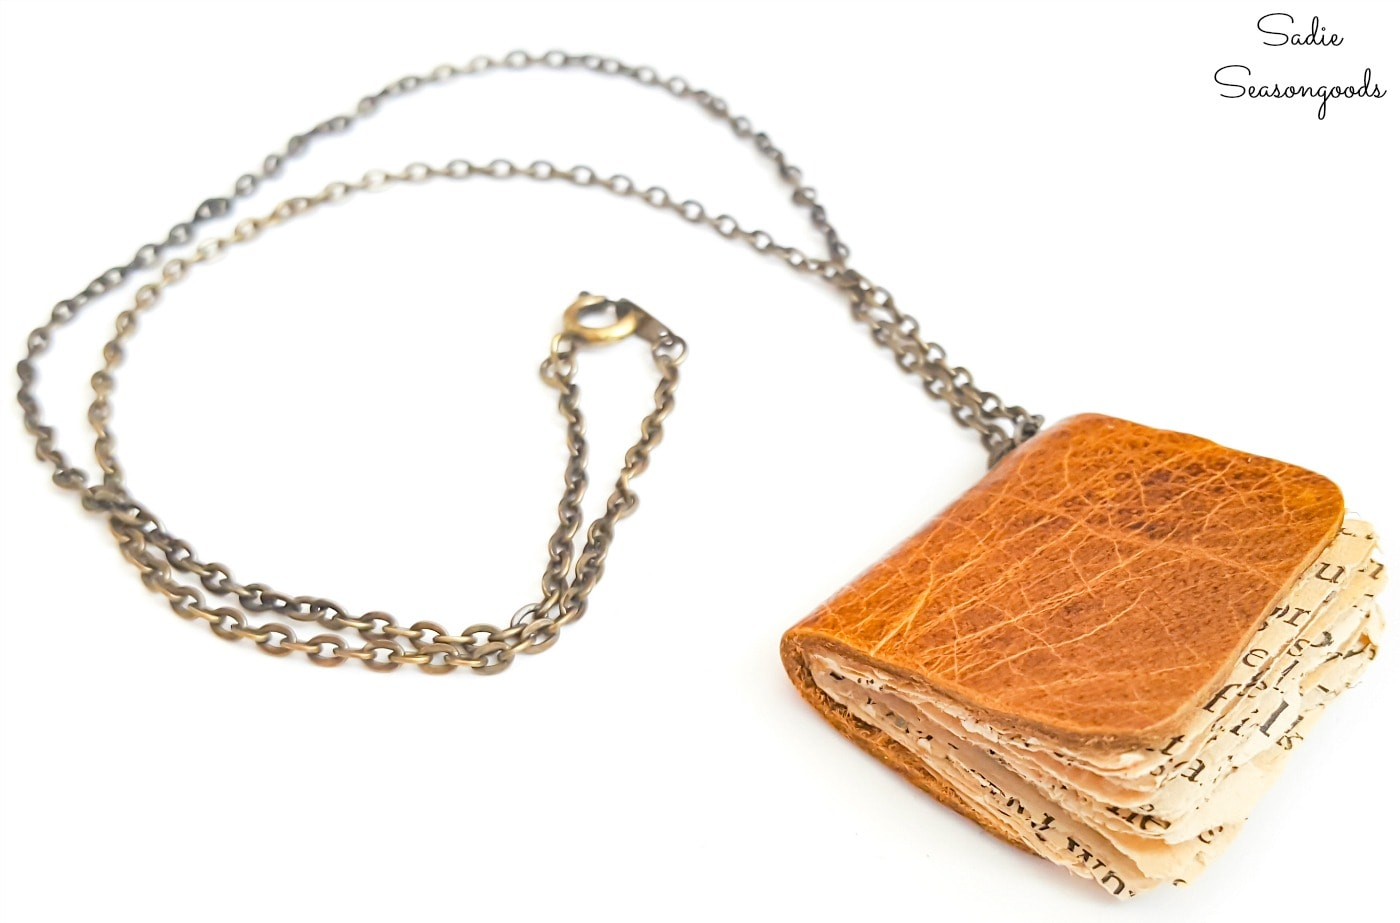 Book necklace as a gift for a reader